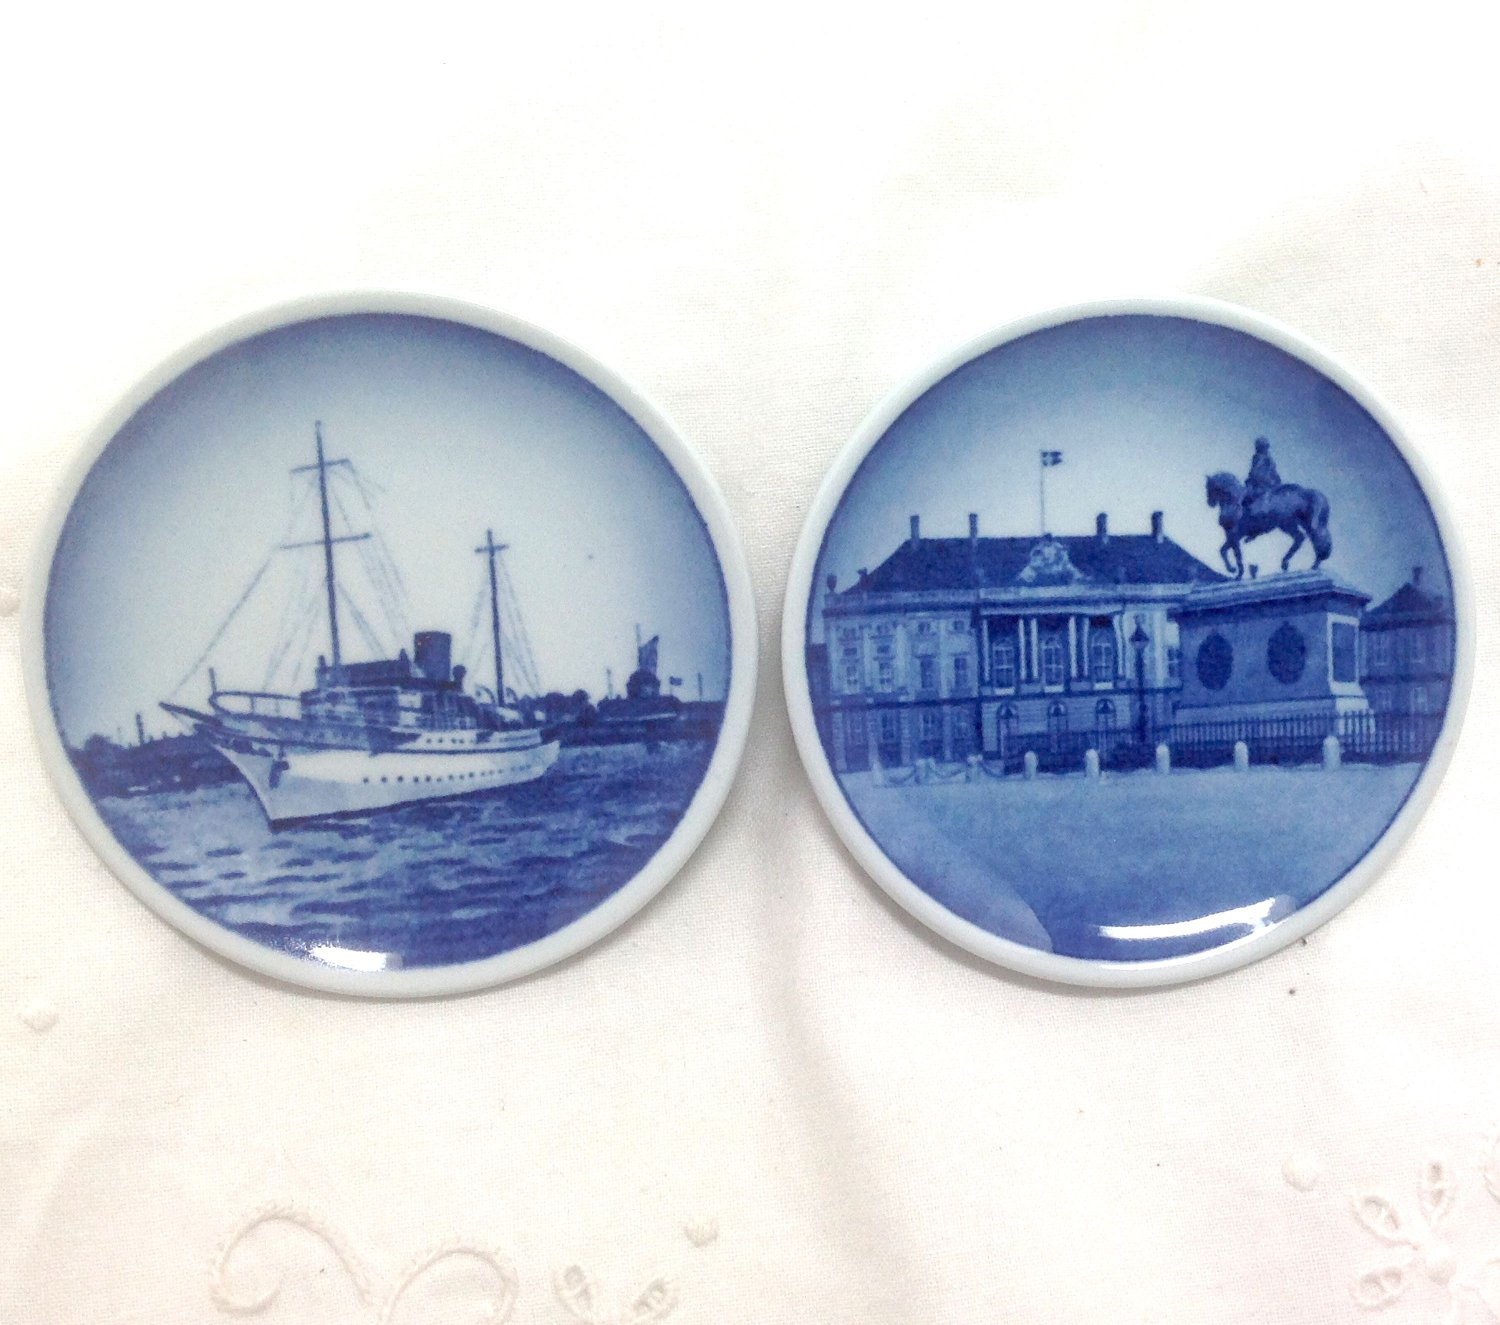 Royal Copenhagen Denmark - Mini Wall Plates - 53-2010 and 13-2010 Series - FAJANCE - Delft Blue